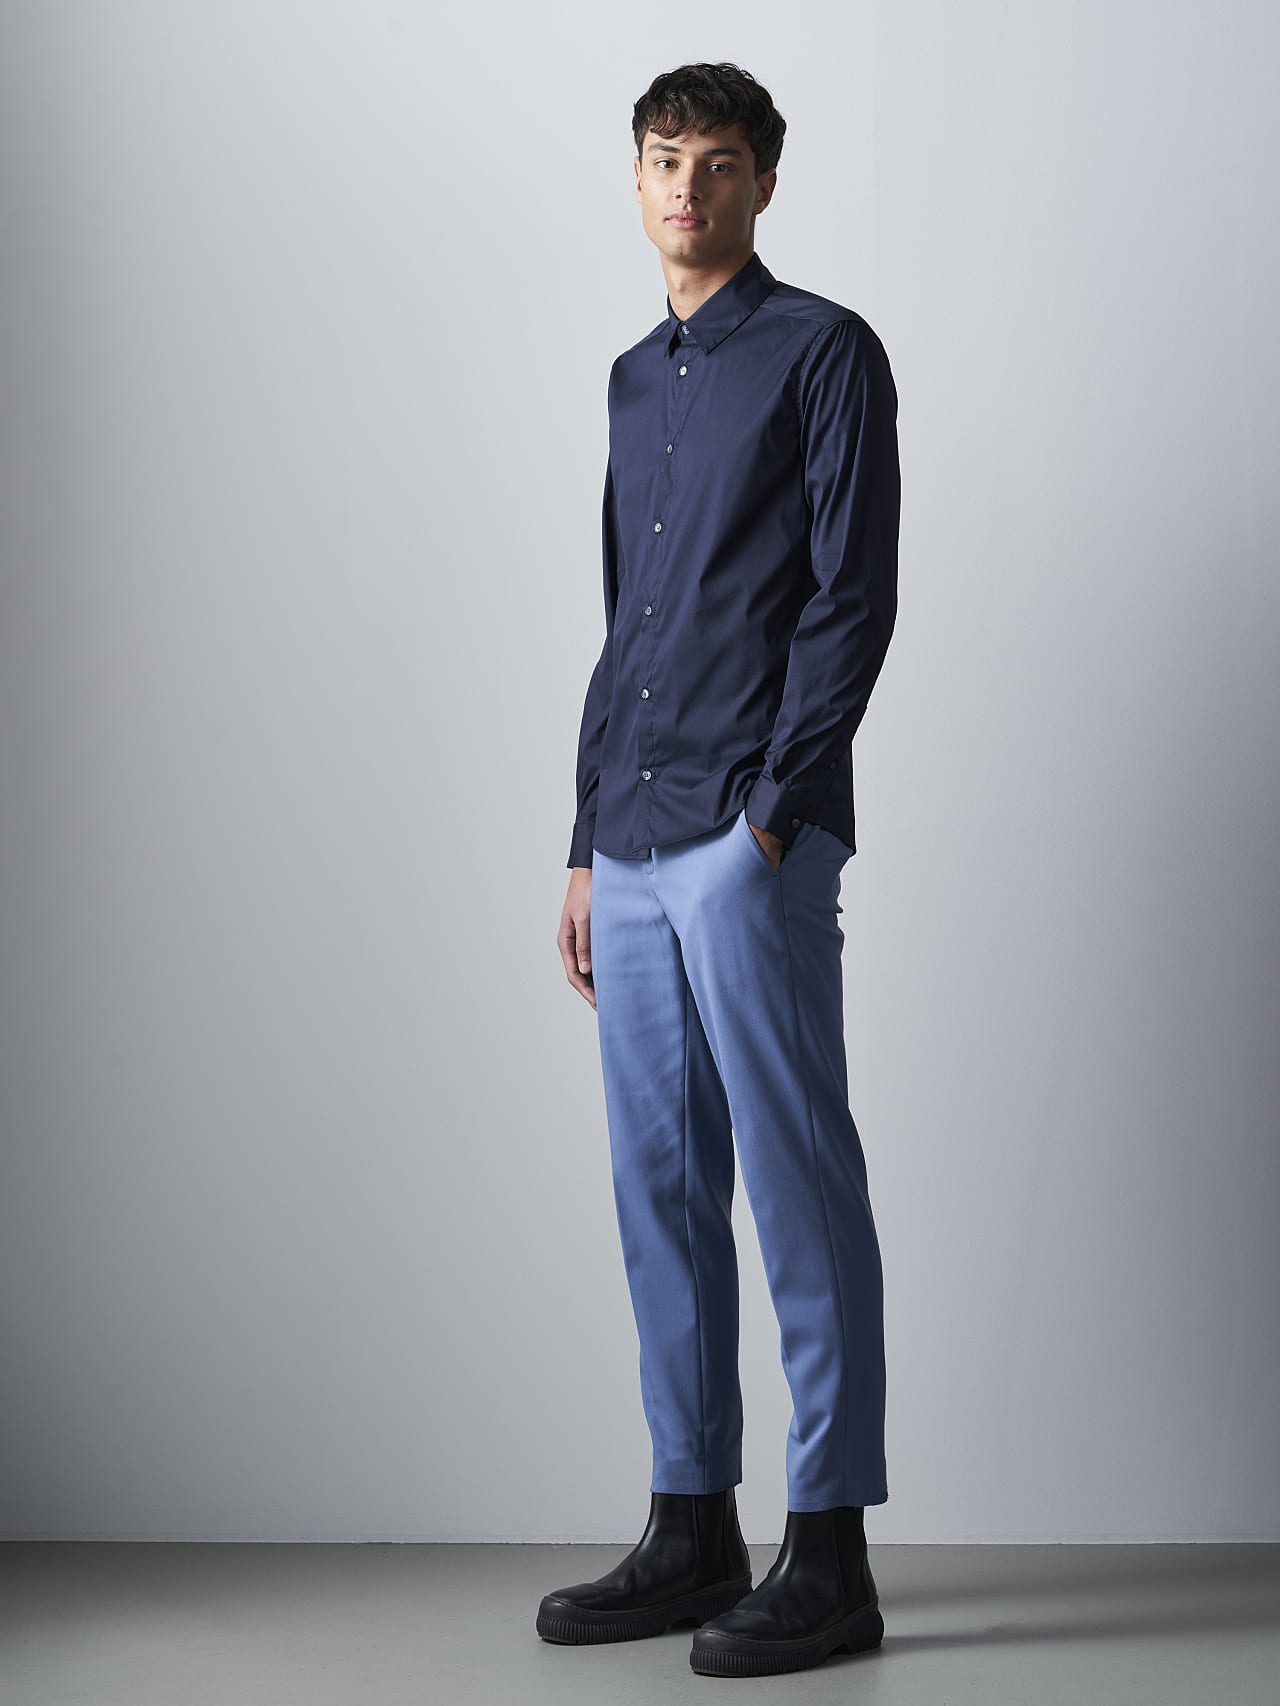 WAARG V2.Y5.02 Easy-Care Cotton Shirt navy Front Alpha Tauri